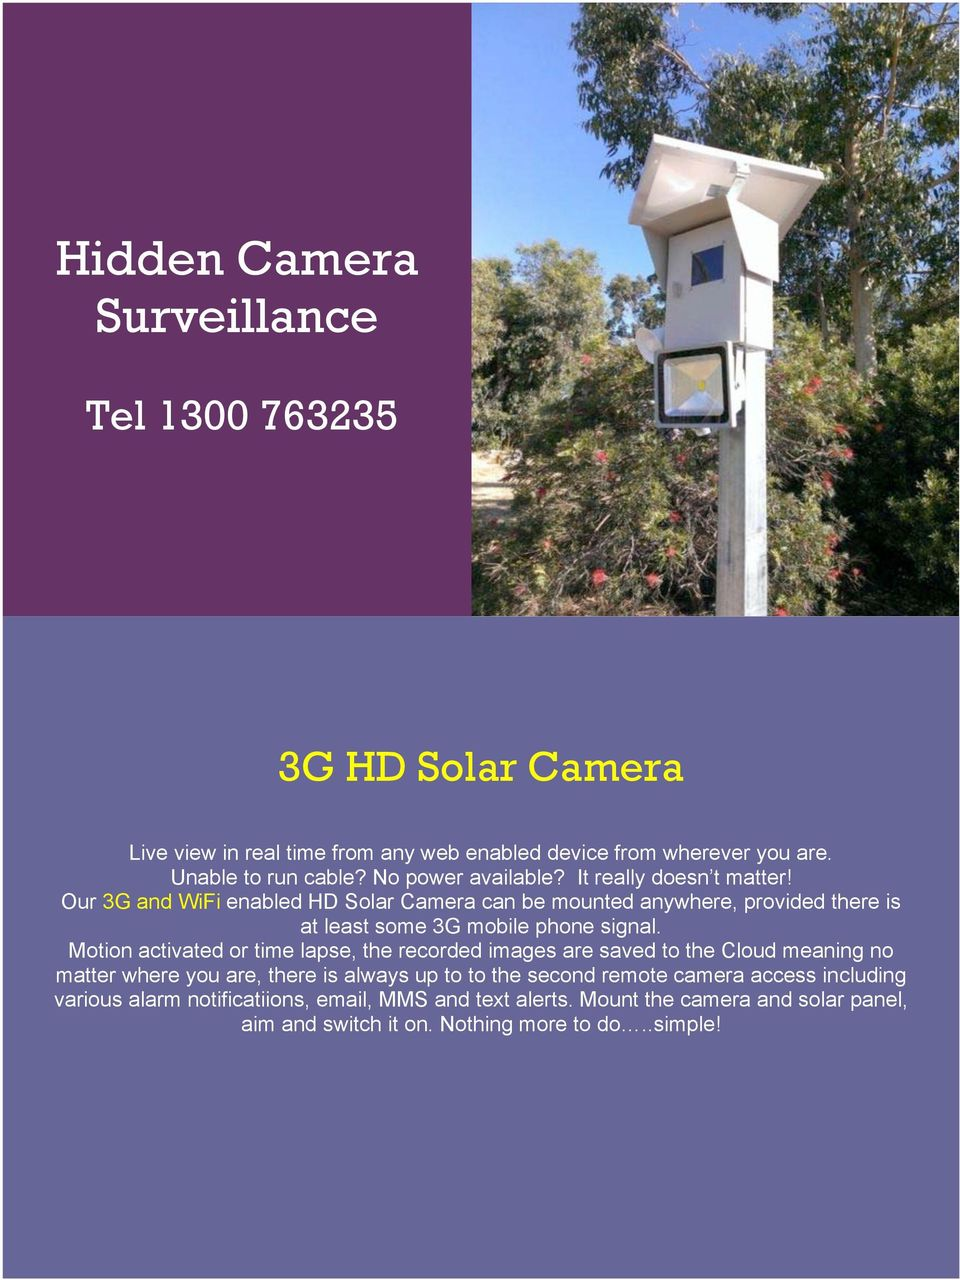 Our 3G and WiFi enabled HD Solar Camera can be mounted anywhere, provided there is at least some 3G mobile phone signal.